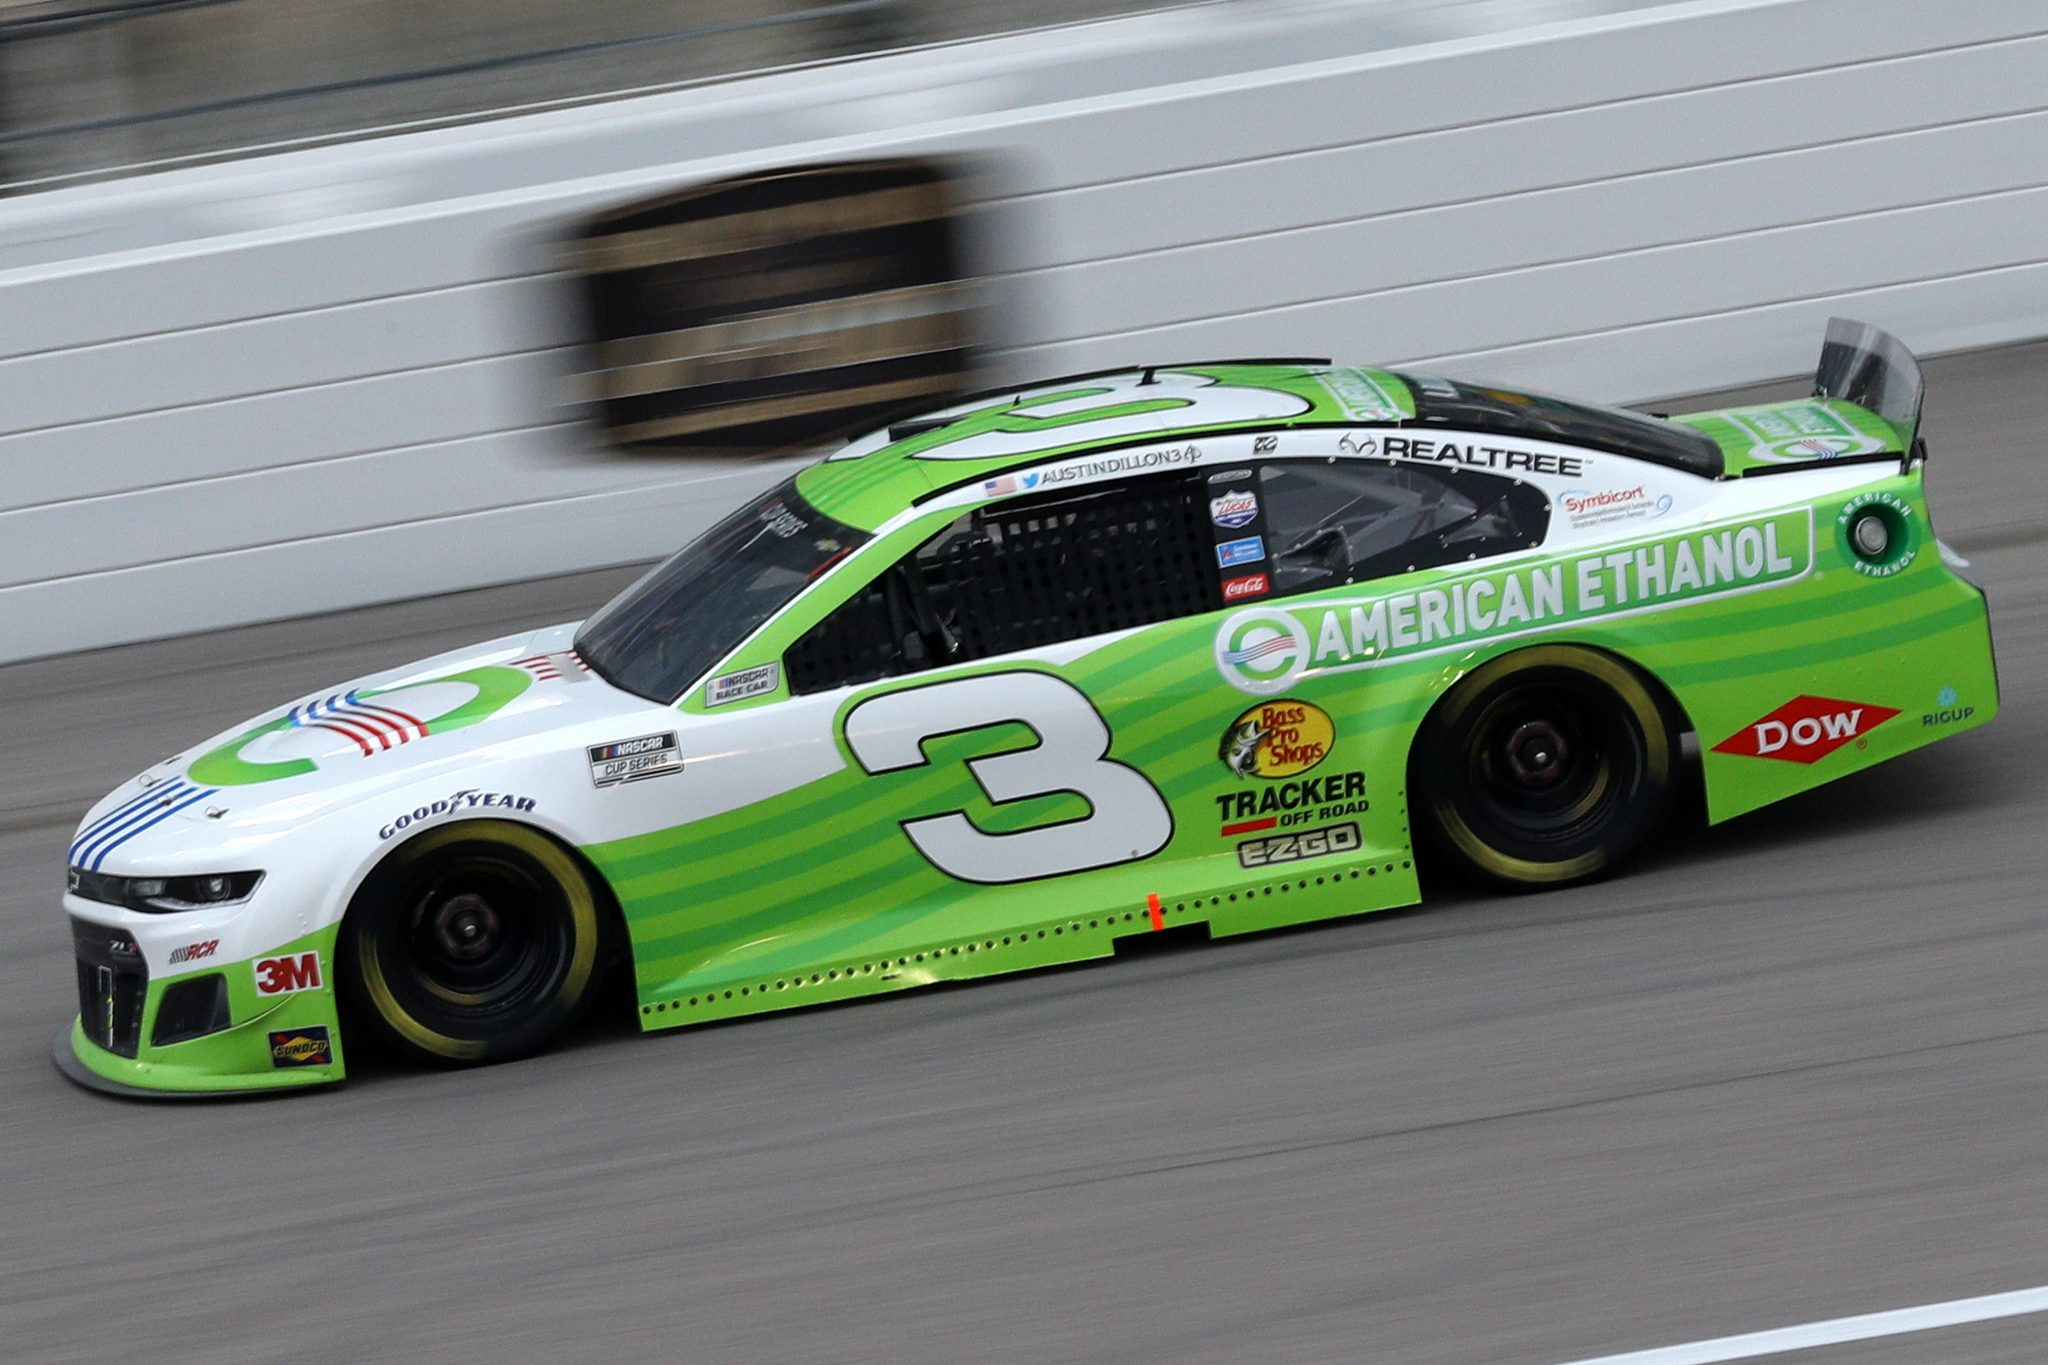 KANSAS CITY, KANSAS - OCTOBER 18: Austin Dillon, driver of the #3 American Ethanol Chevrolet, drives during the NASCAR Cup Series Hollywood Casino 400 at Kansas Speedway on October 18, 2020 in Kansas City, Kansas. (Photo by Chris Graythen/Getty Images) | Getty Images